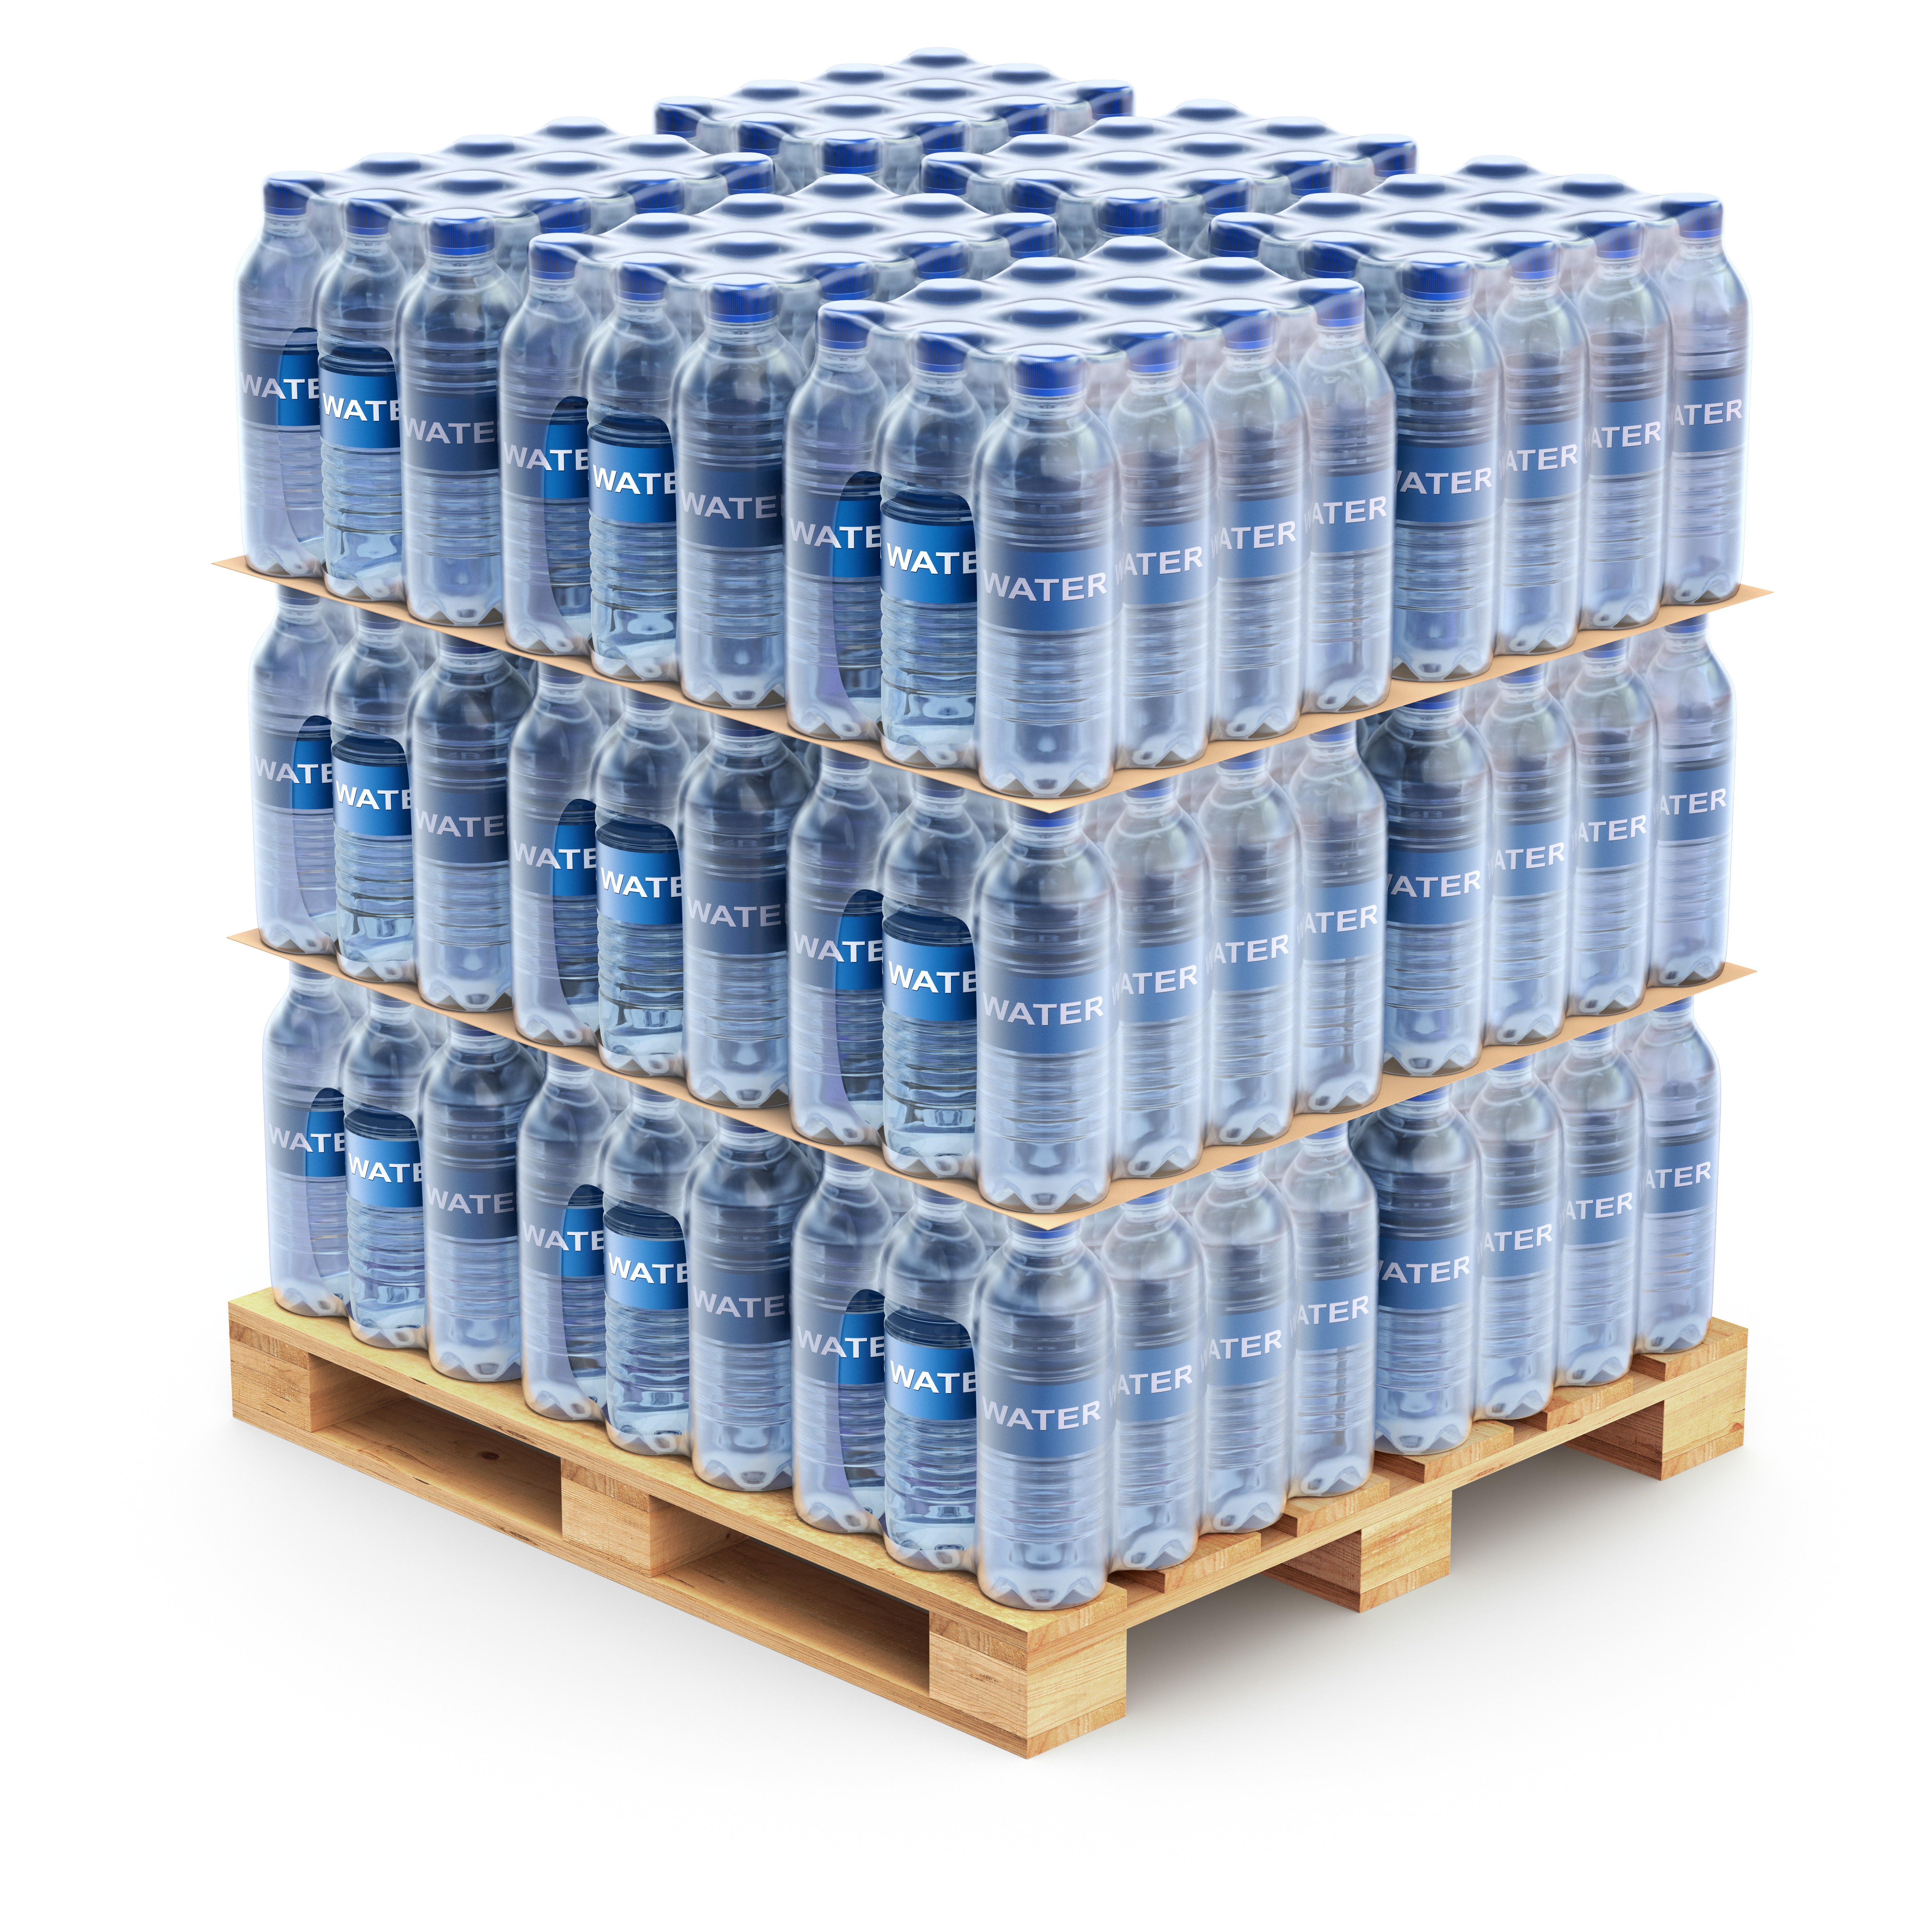 Plastic PET bottles on the pallet